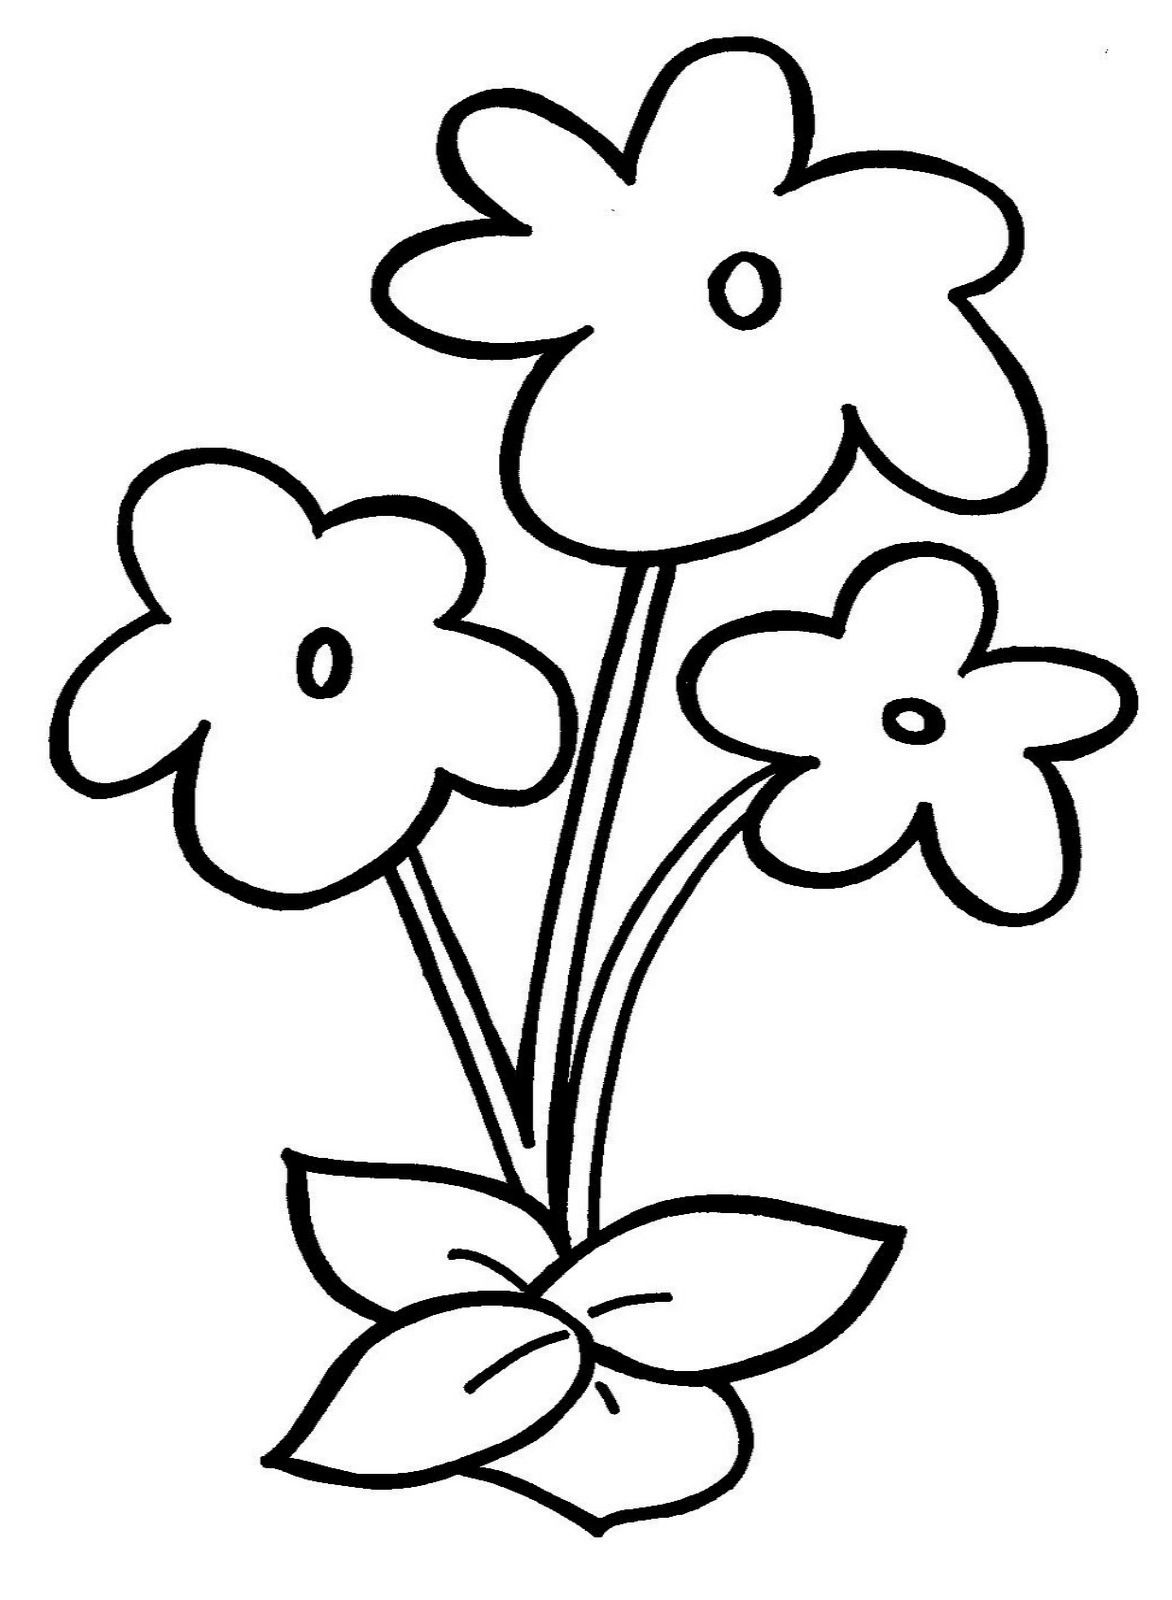 Small Flower Coloring Pages Flower Coloring Pages Easy Flower Drawings Flower Drawing For Kids